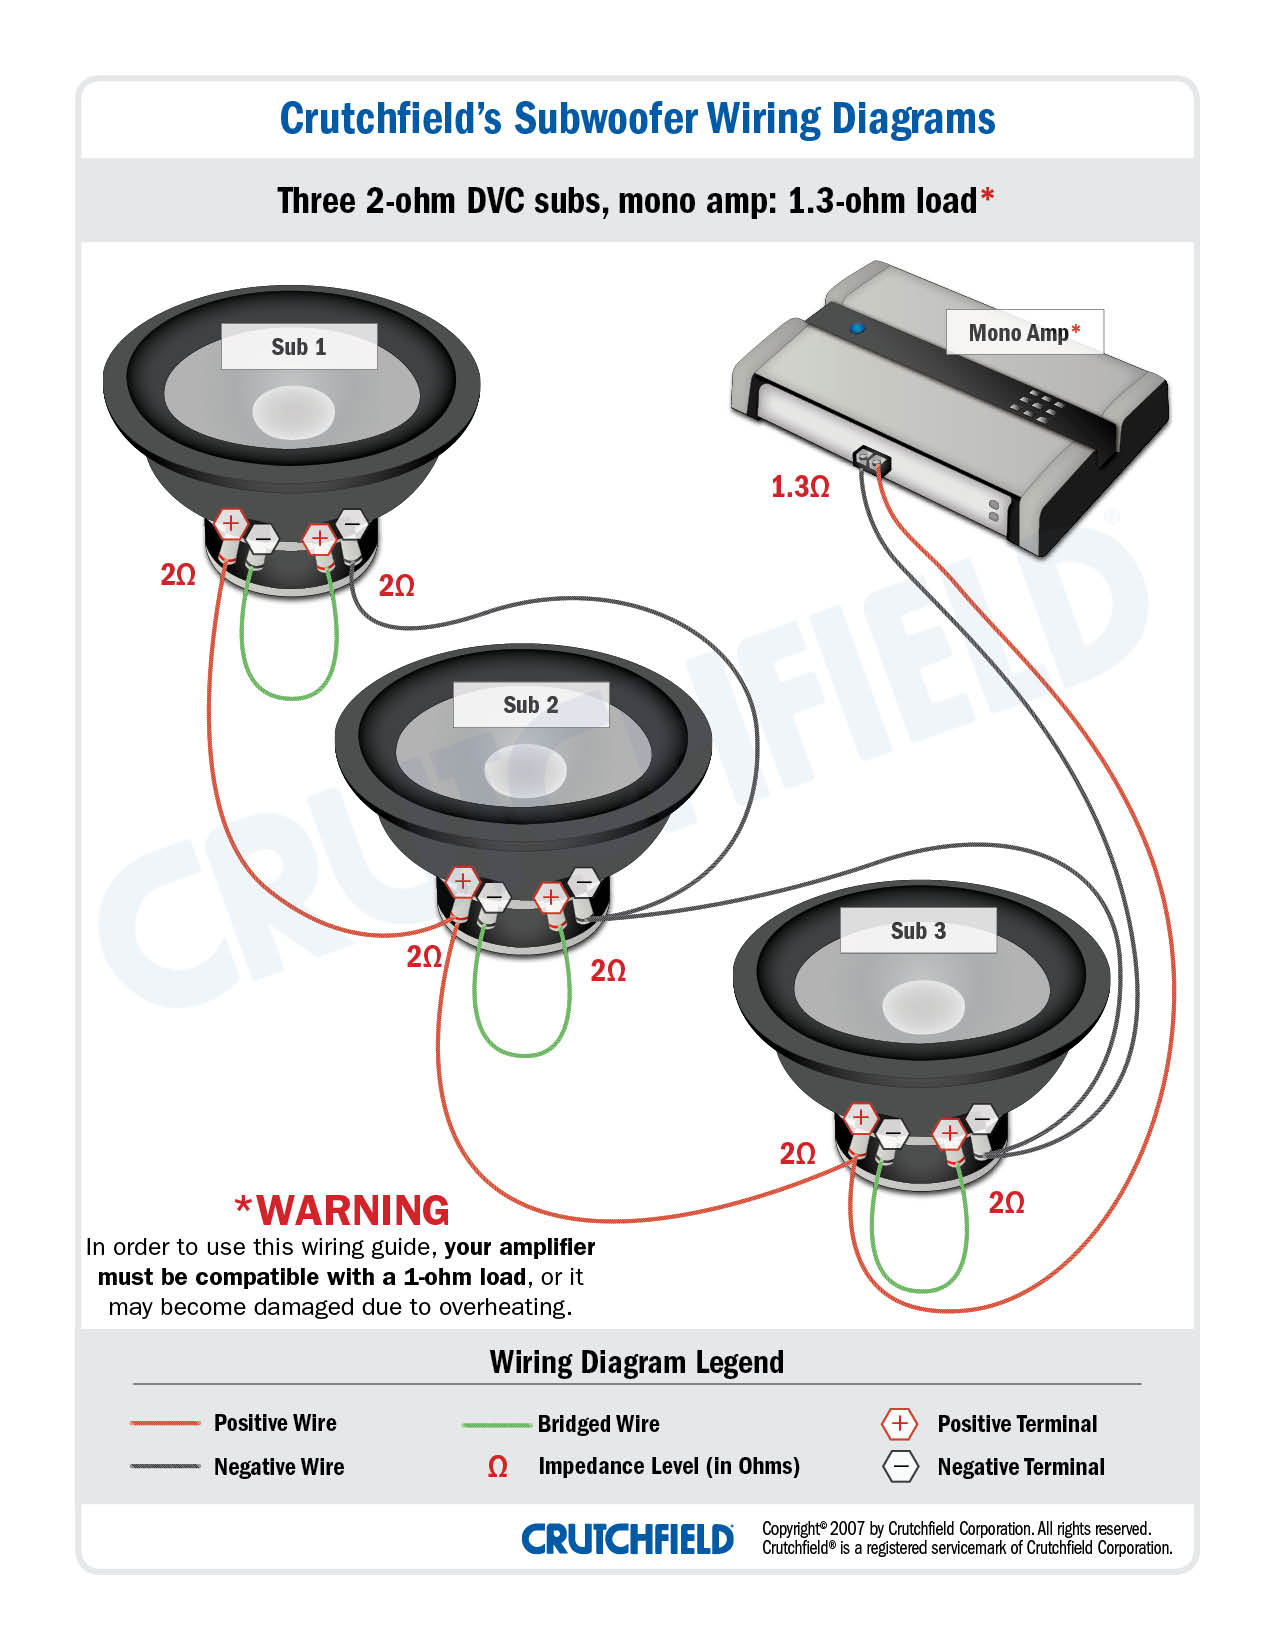 jl audio wiring diagram subwoofer wiring diagrams 3 dvc 2 ohm mono low imp